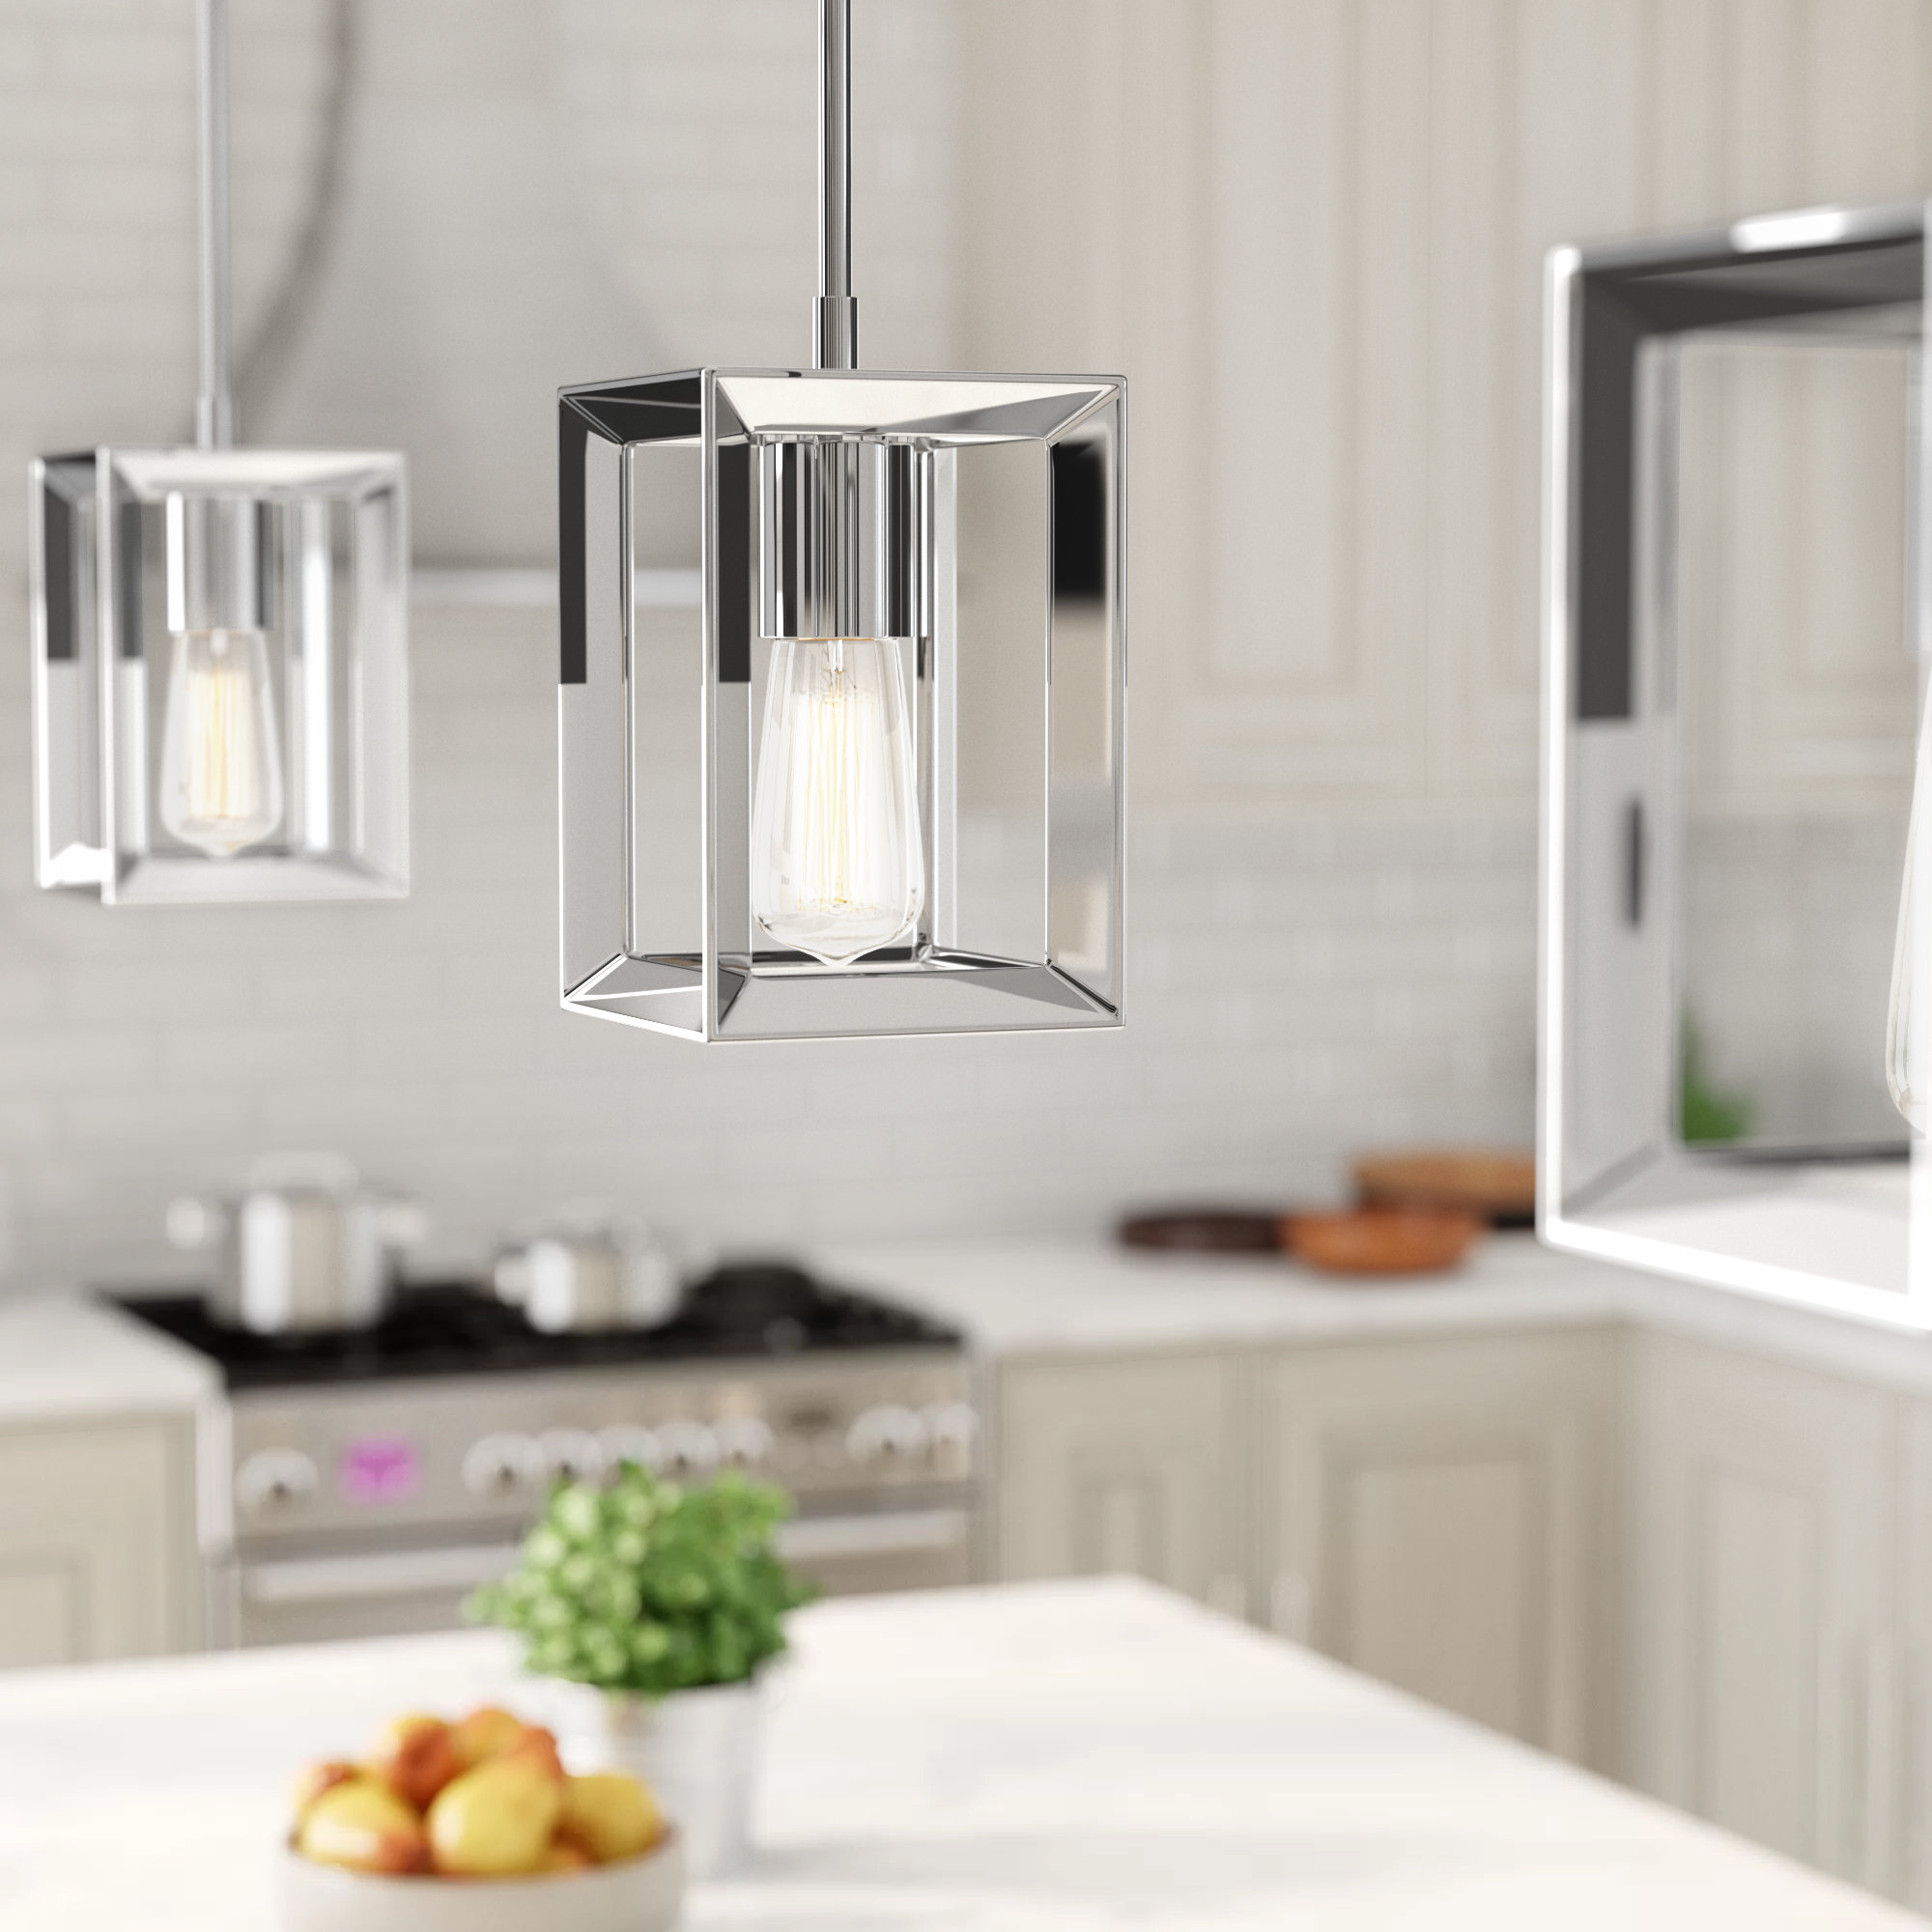 Widely Used Thorne 4 Light Lantern Rectangle Pendants Regarding Thorne 1 Light Square/rectangle Pendant (View 20 of 20)